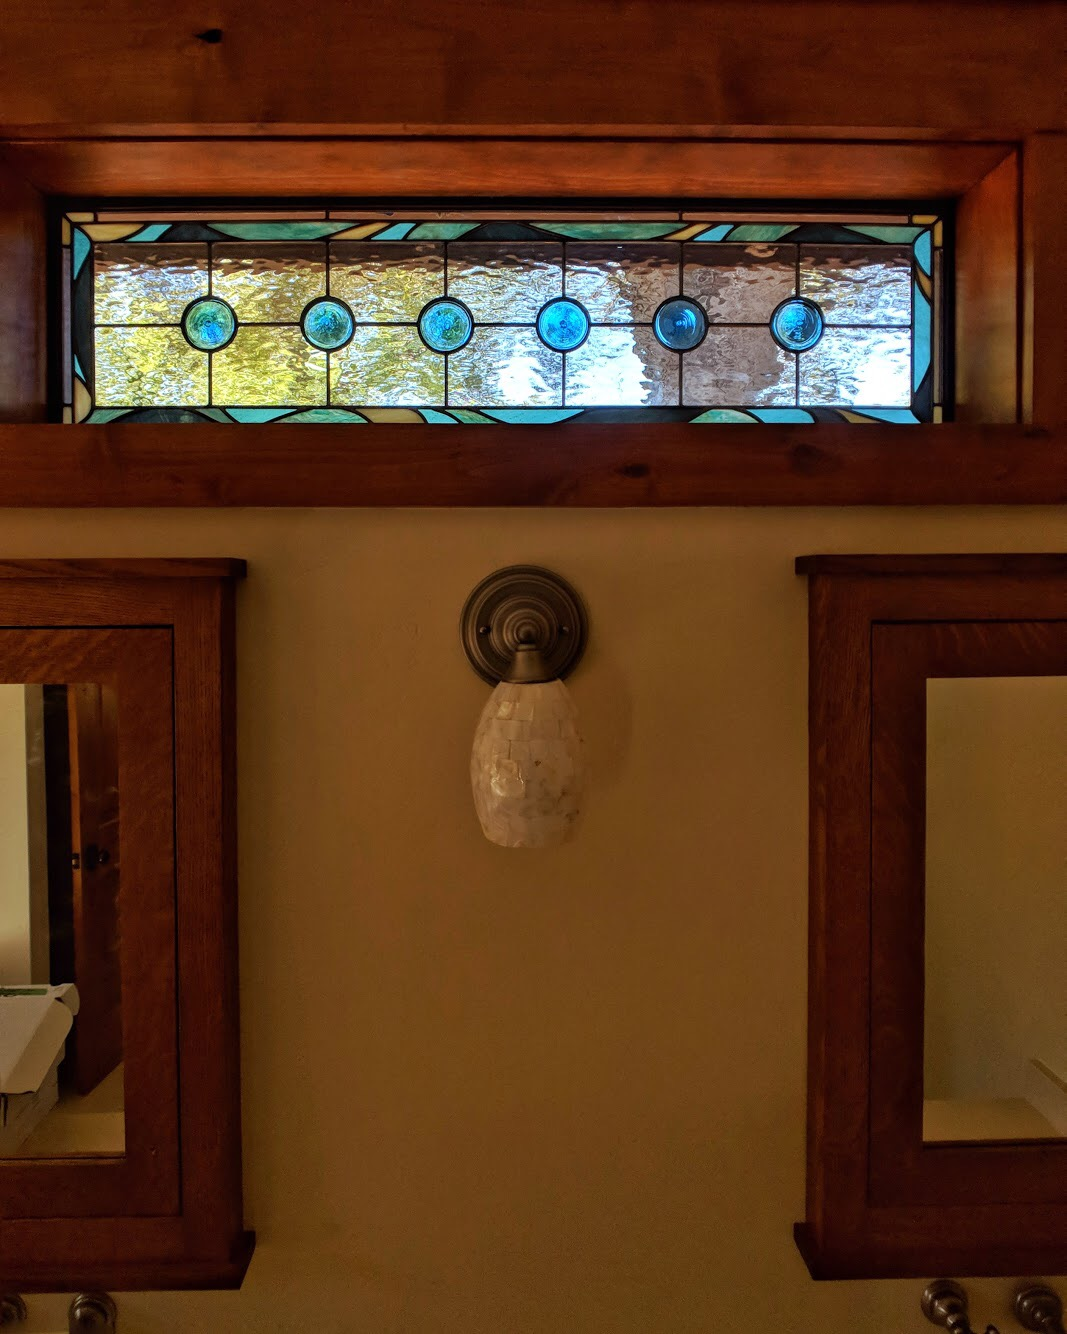 stained glass leaded glass design legacy glass studios menlo park bay area california custom design insulated window waterglass mouth blown rondel craftsman home ocean inspired spa bathroom.JPG